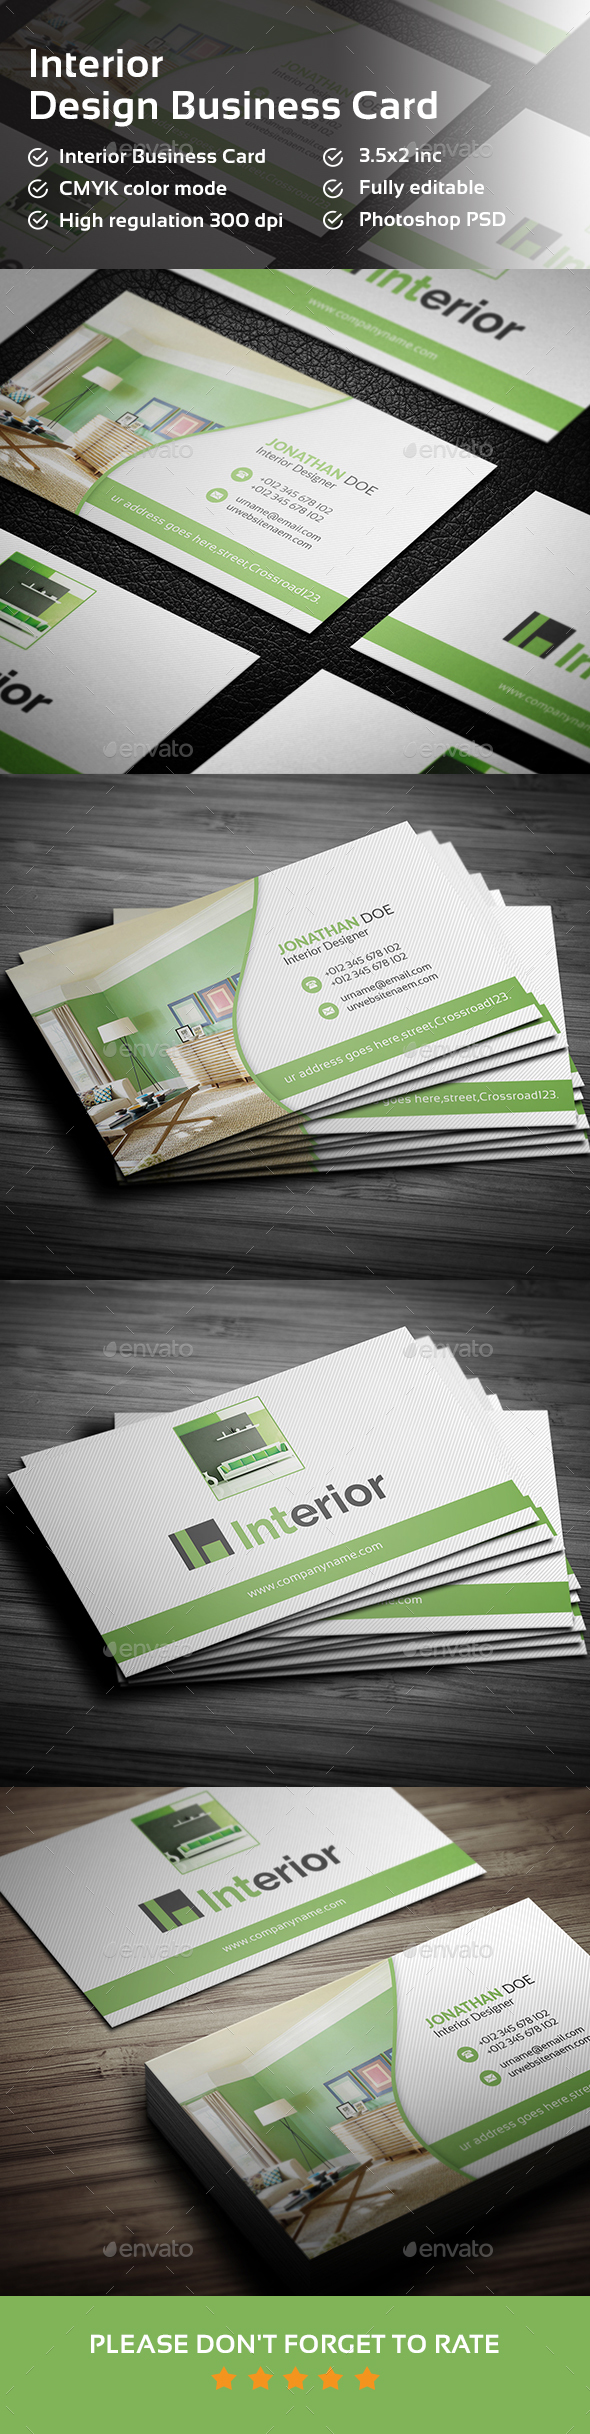 Interior Design Business Card  - Industry Specific Business Cards